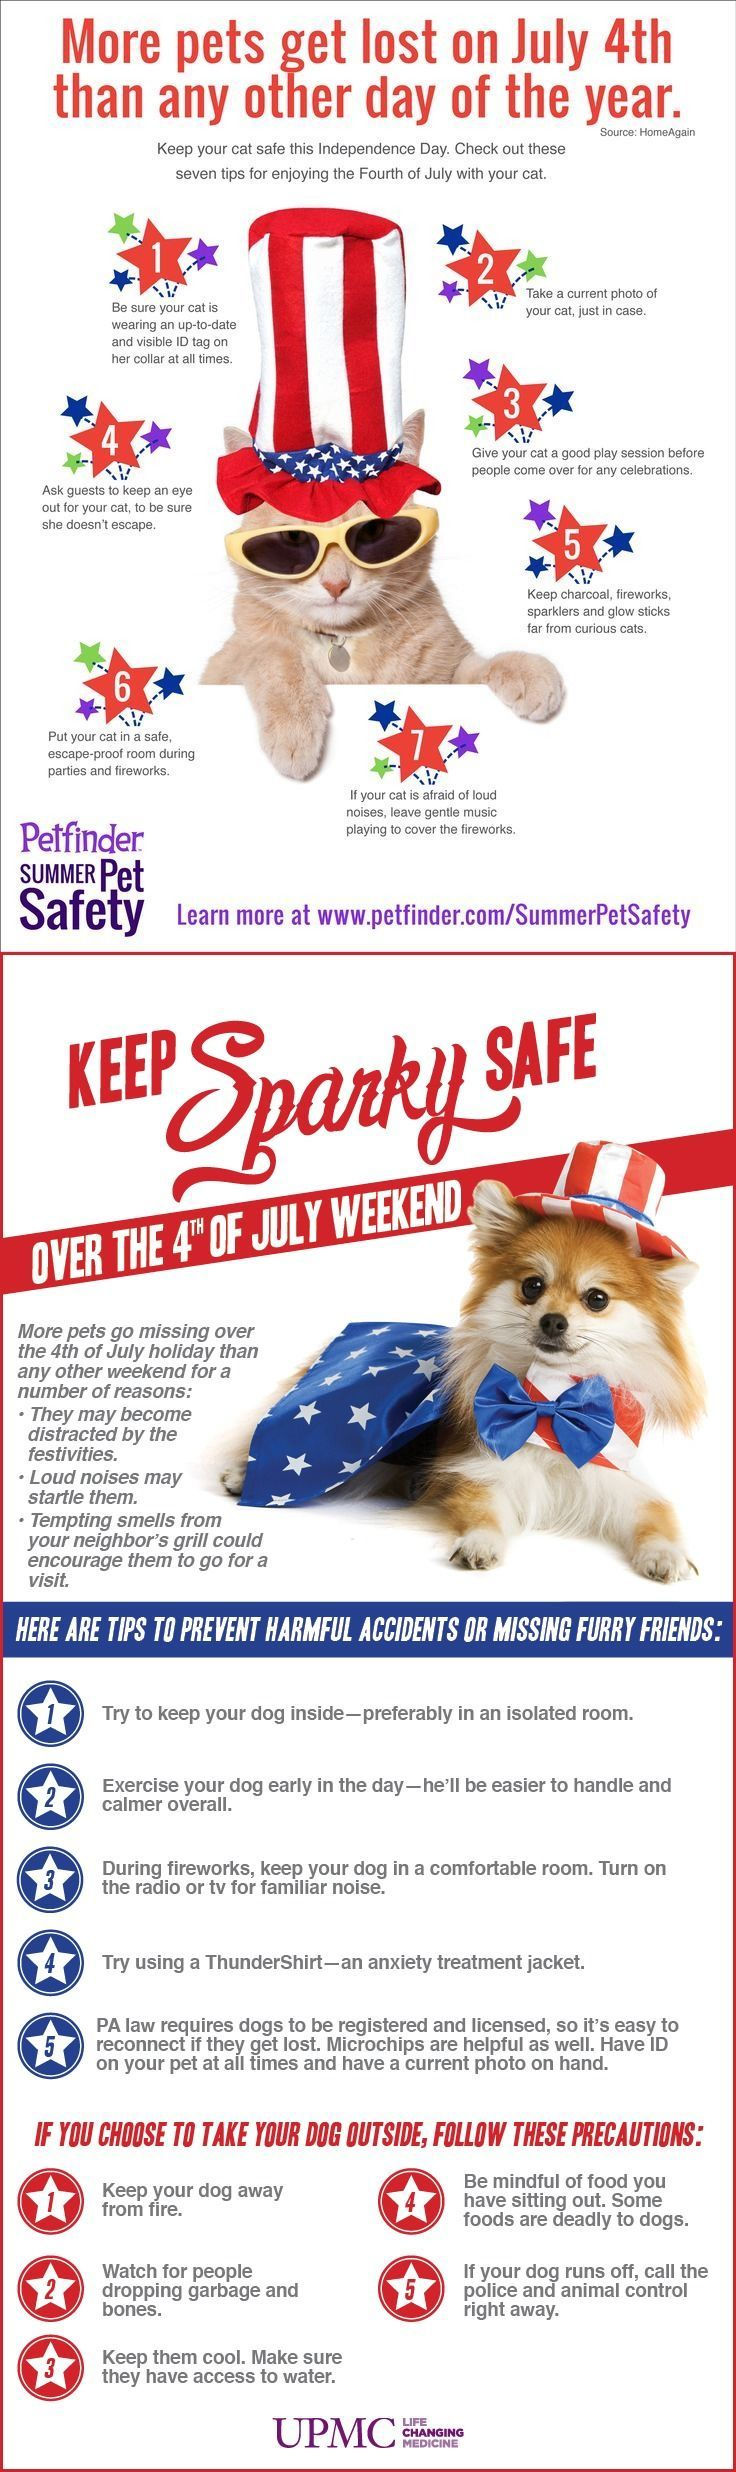 More Pets Go Missing On July 4th Than Any Other Day Of The Year Here Are Tips To Keep The Safe This Weekend Animals Dogs Cats Pet Pet Safety Pet Holiday